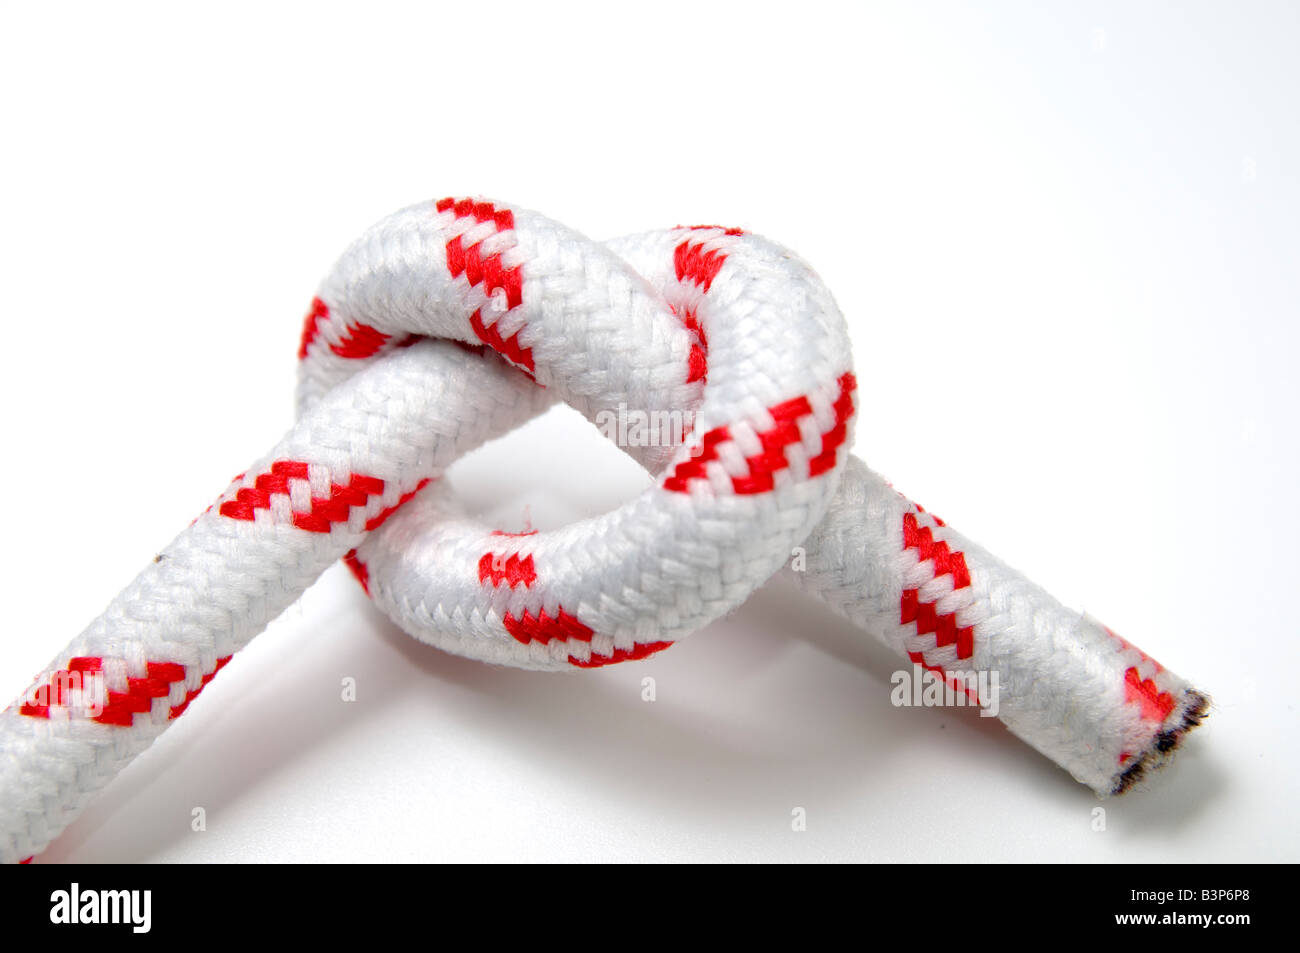 Overhand Knot on white background - Stock Image